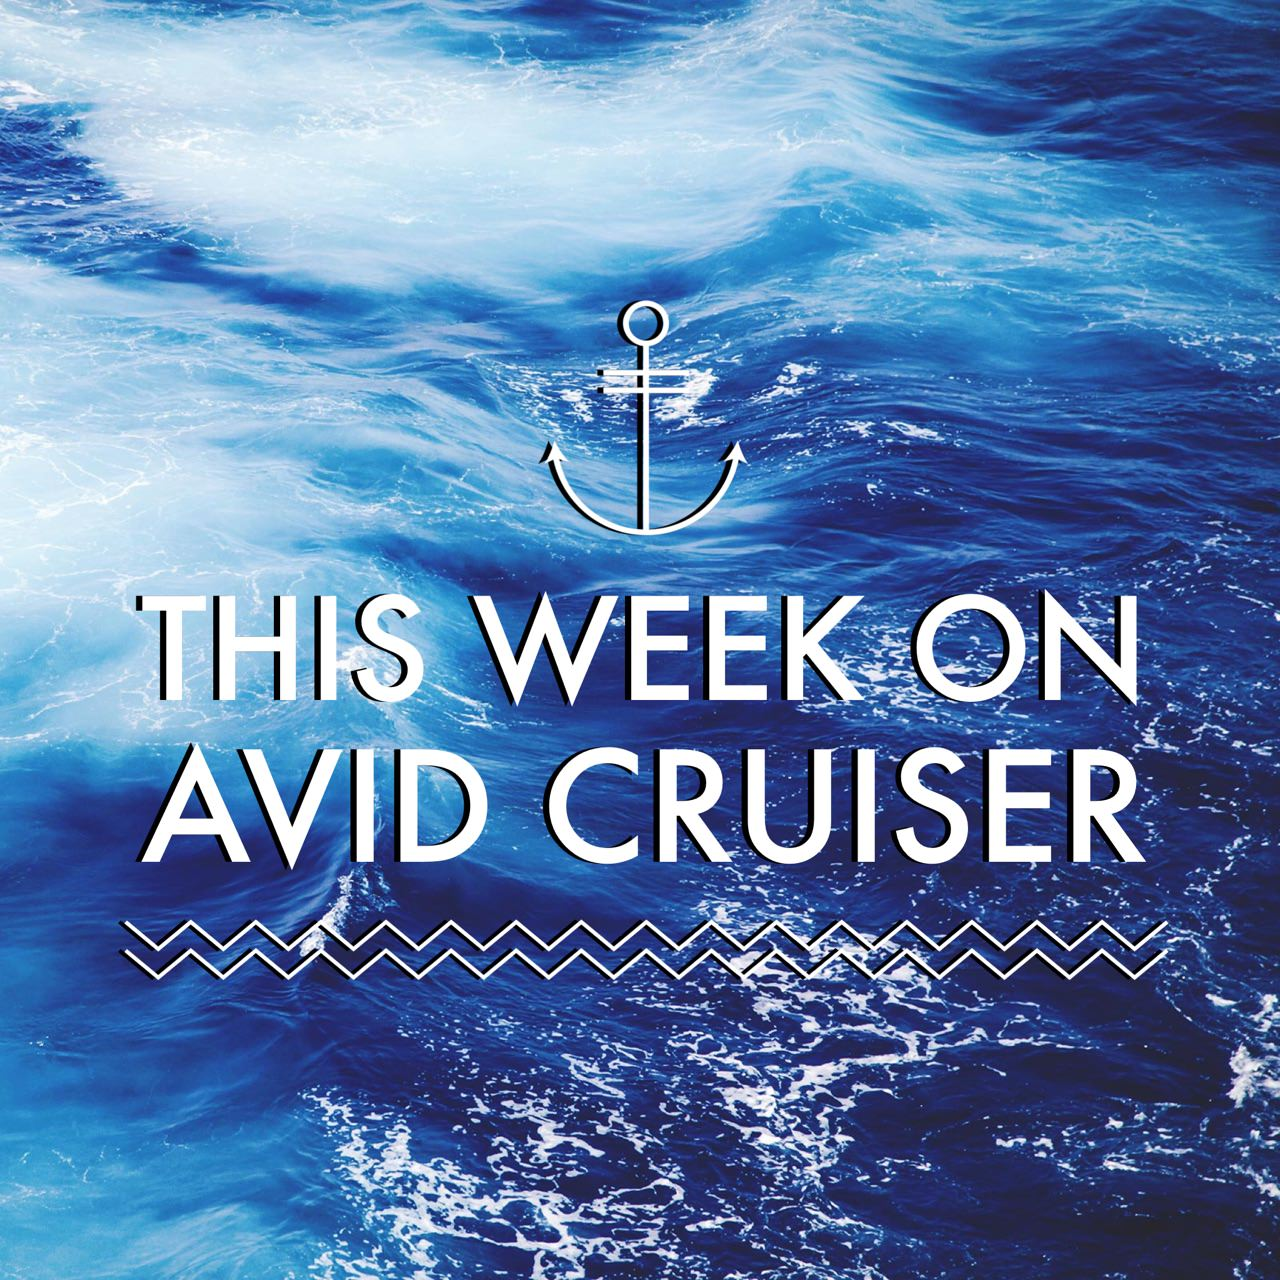 This Week on Avid Cruiser